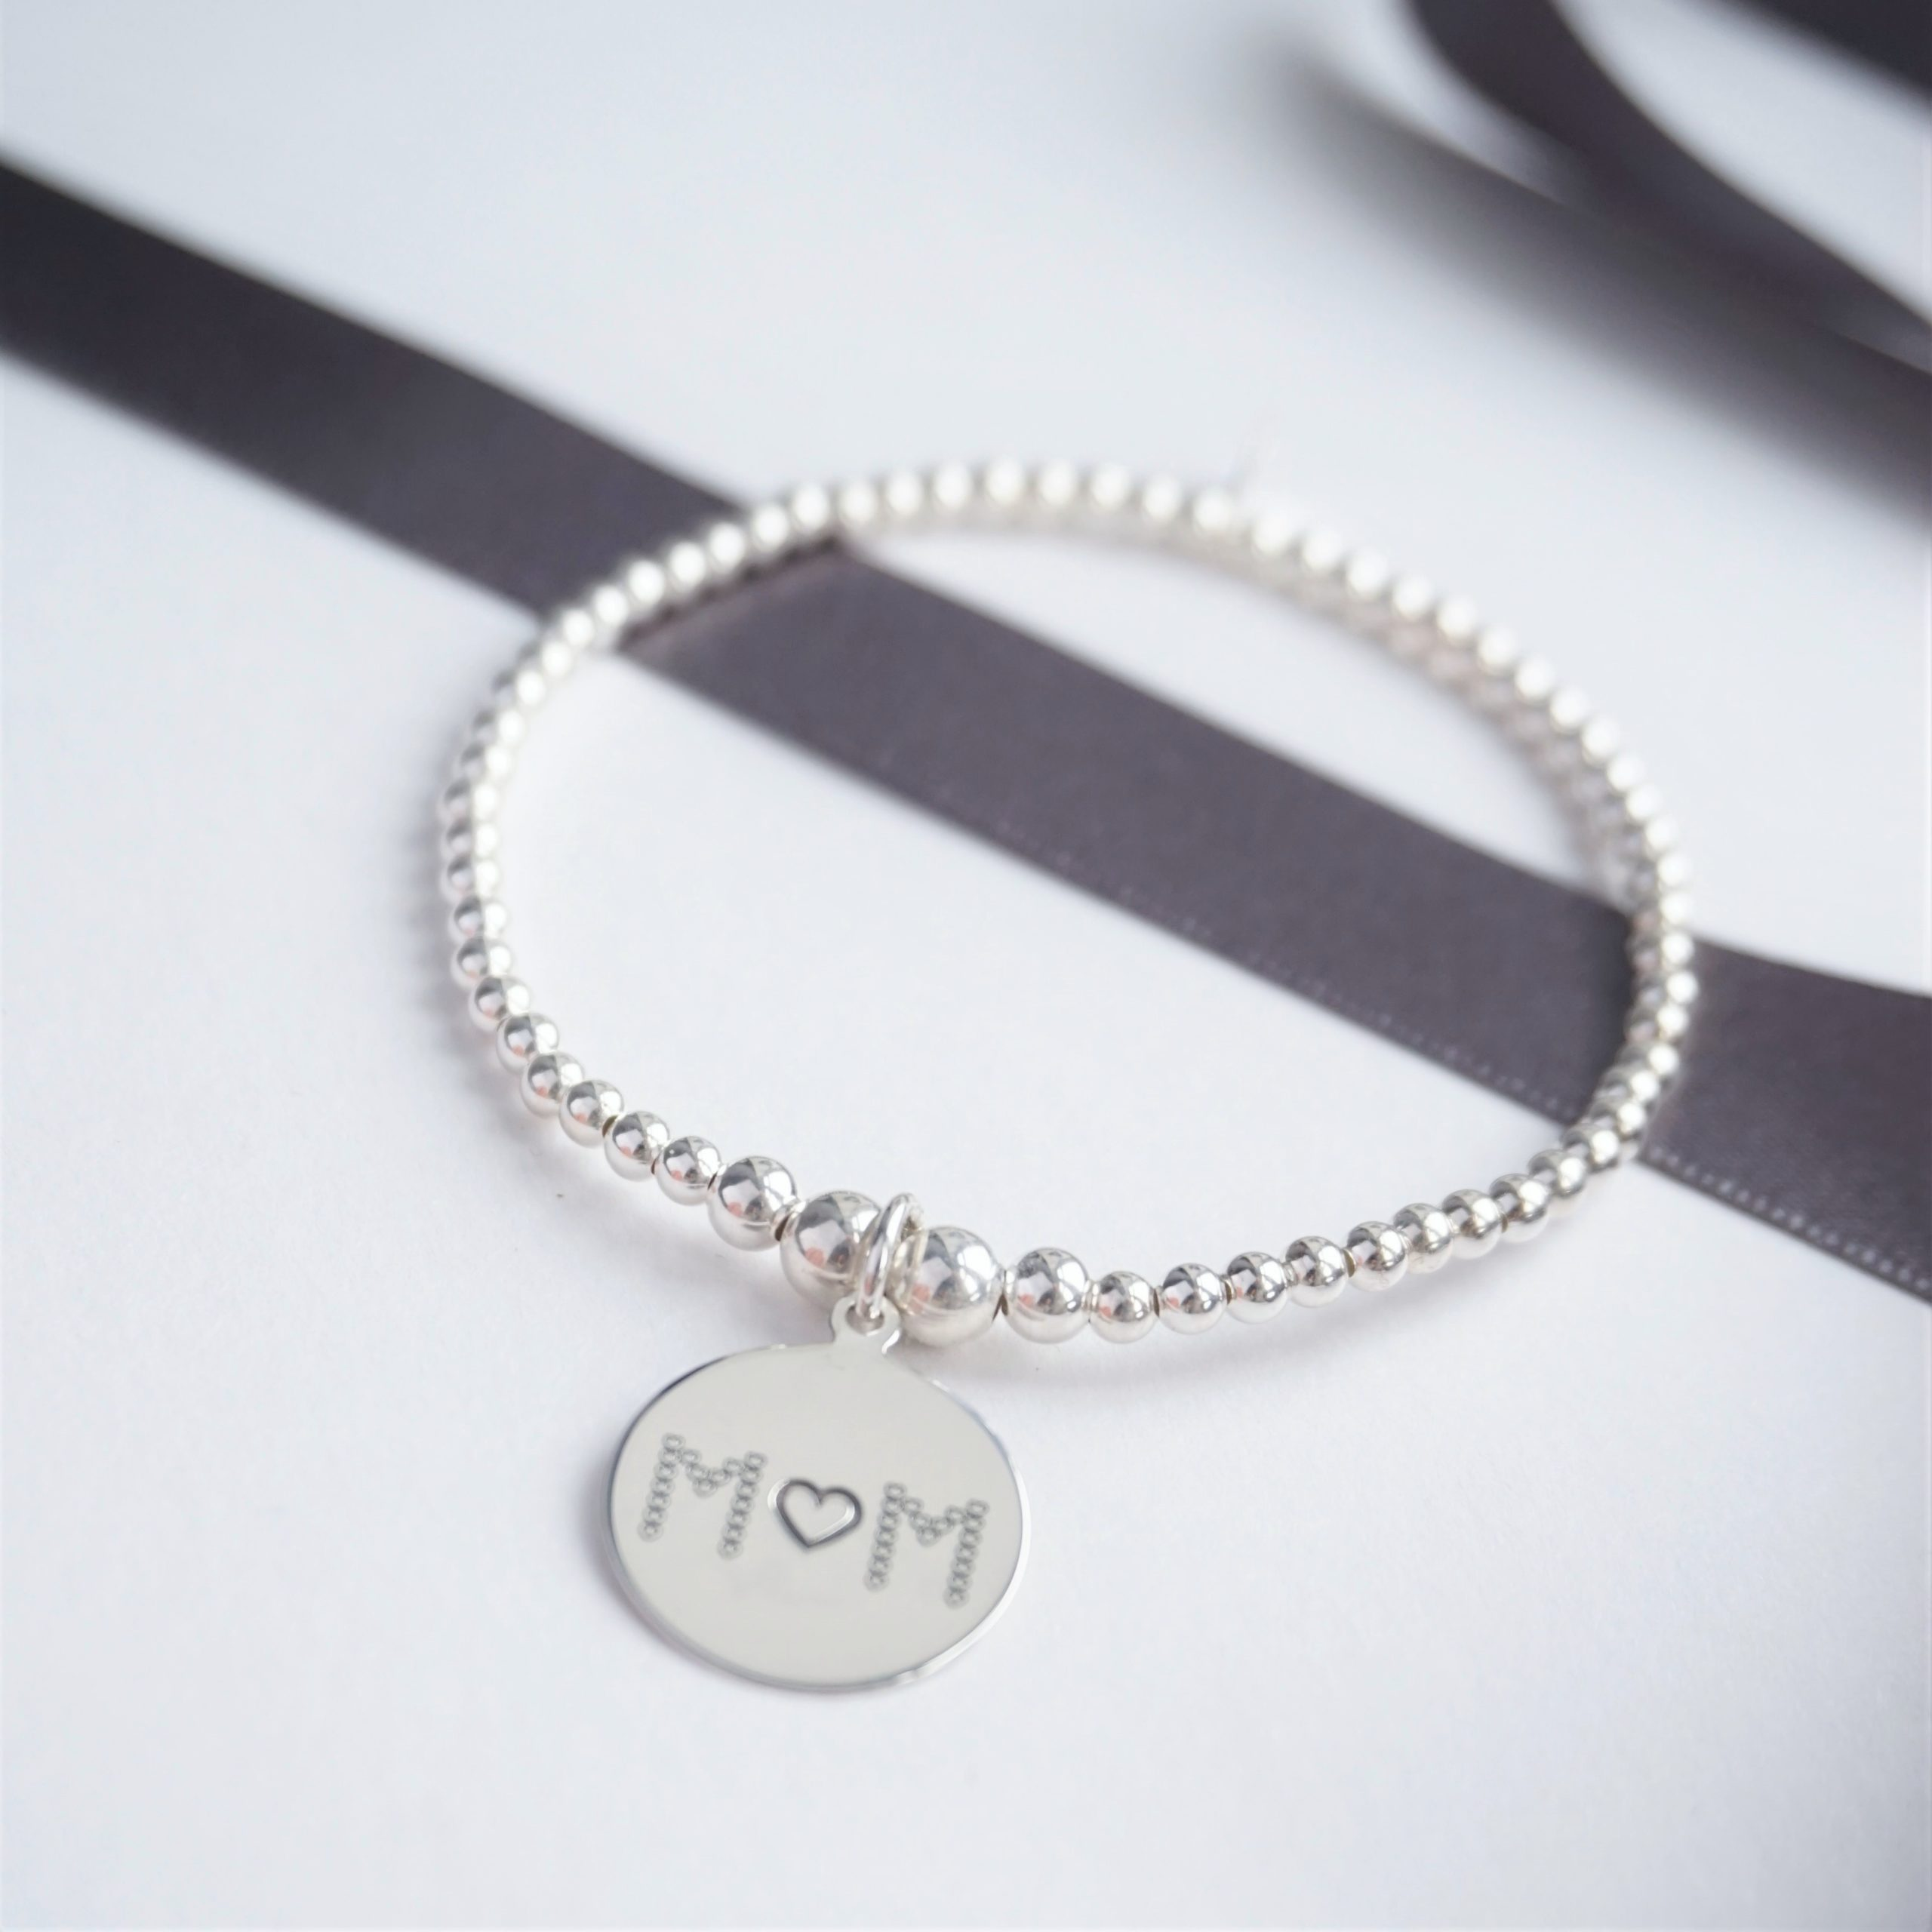 sterling silver bracelet with mum charm